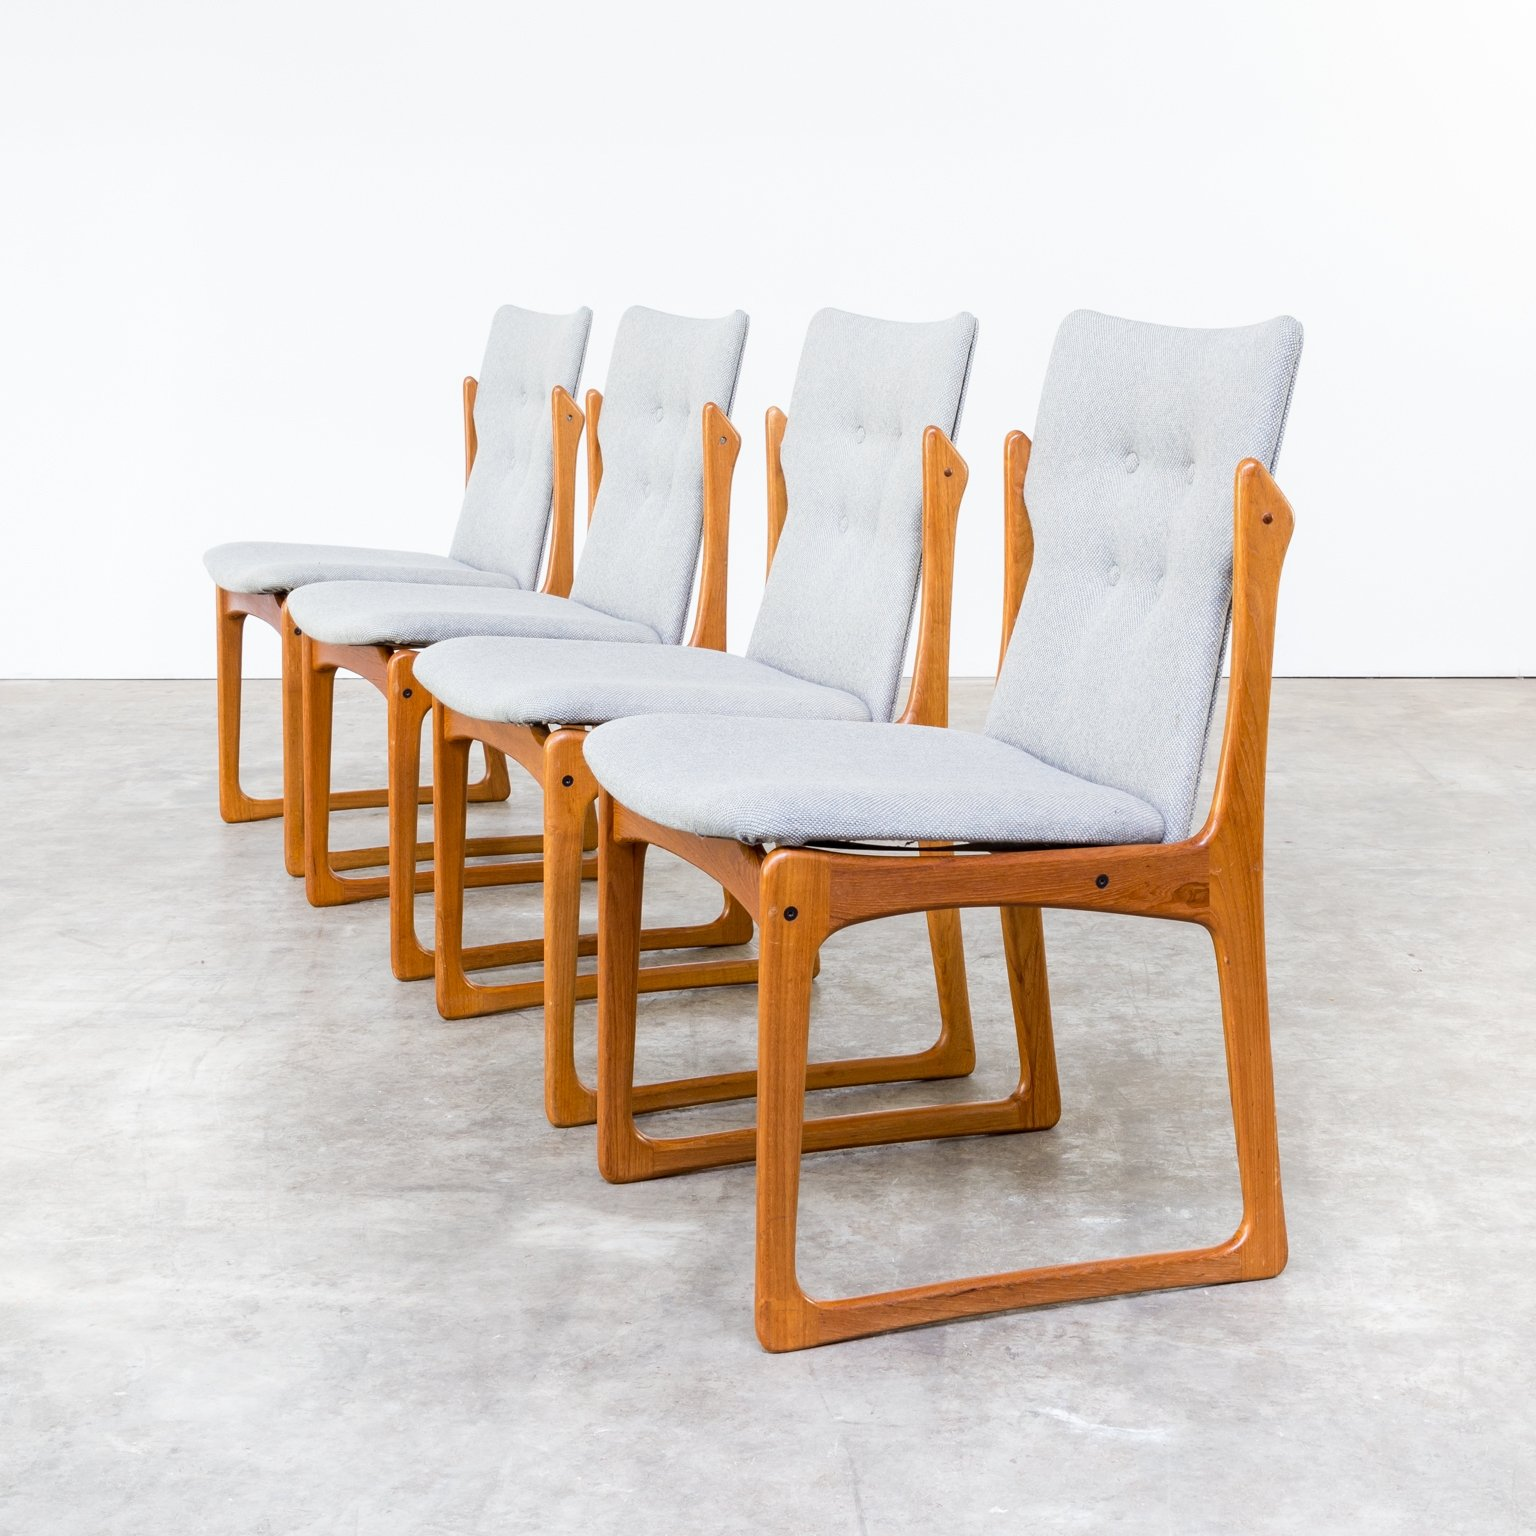 Stupendous Set Of 4 Vamdrup Stolefabrik Dining Chairs 1960S 62991 Beatyapartments Chair Design Images Beatyapartmentscom